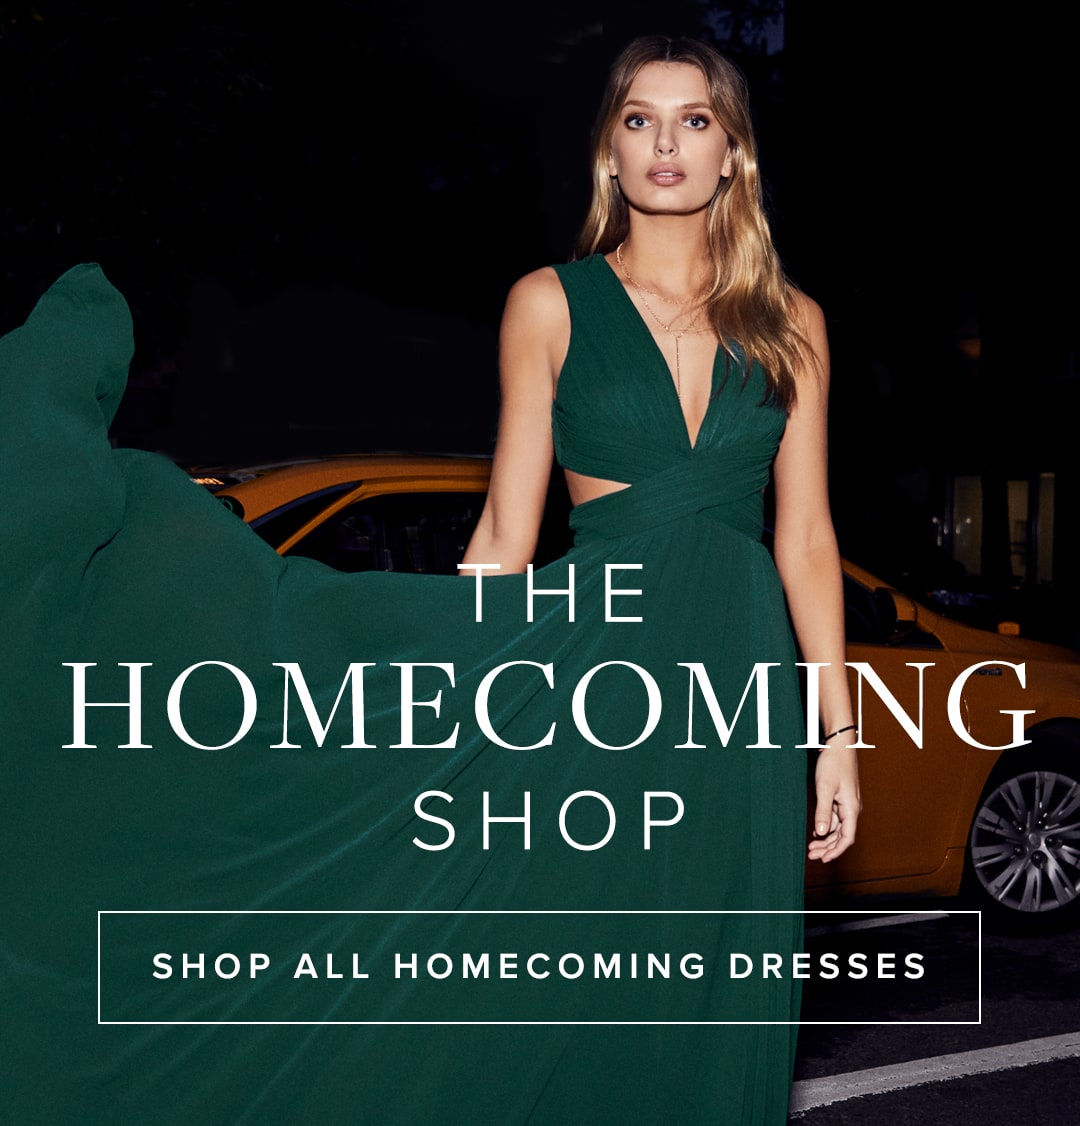 The Homecoming Shop- Shop Homecoming Dresses.